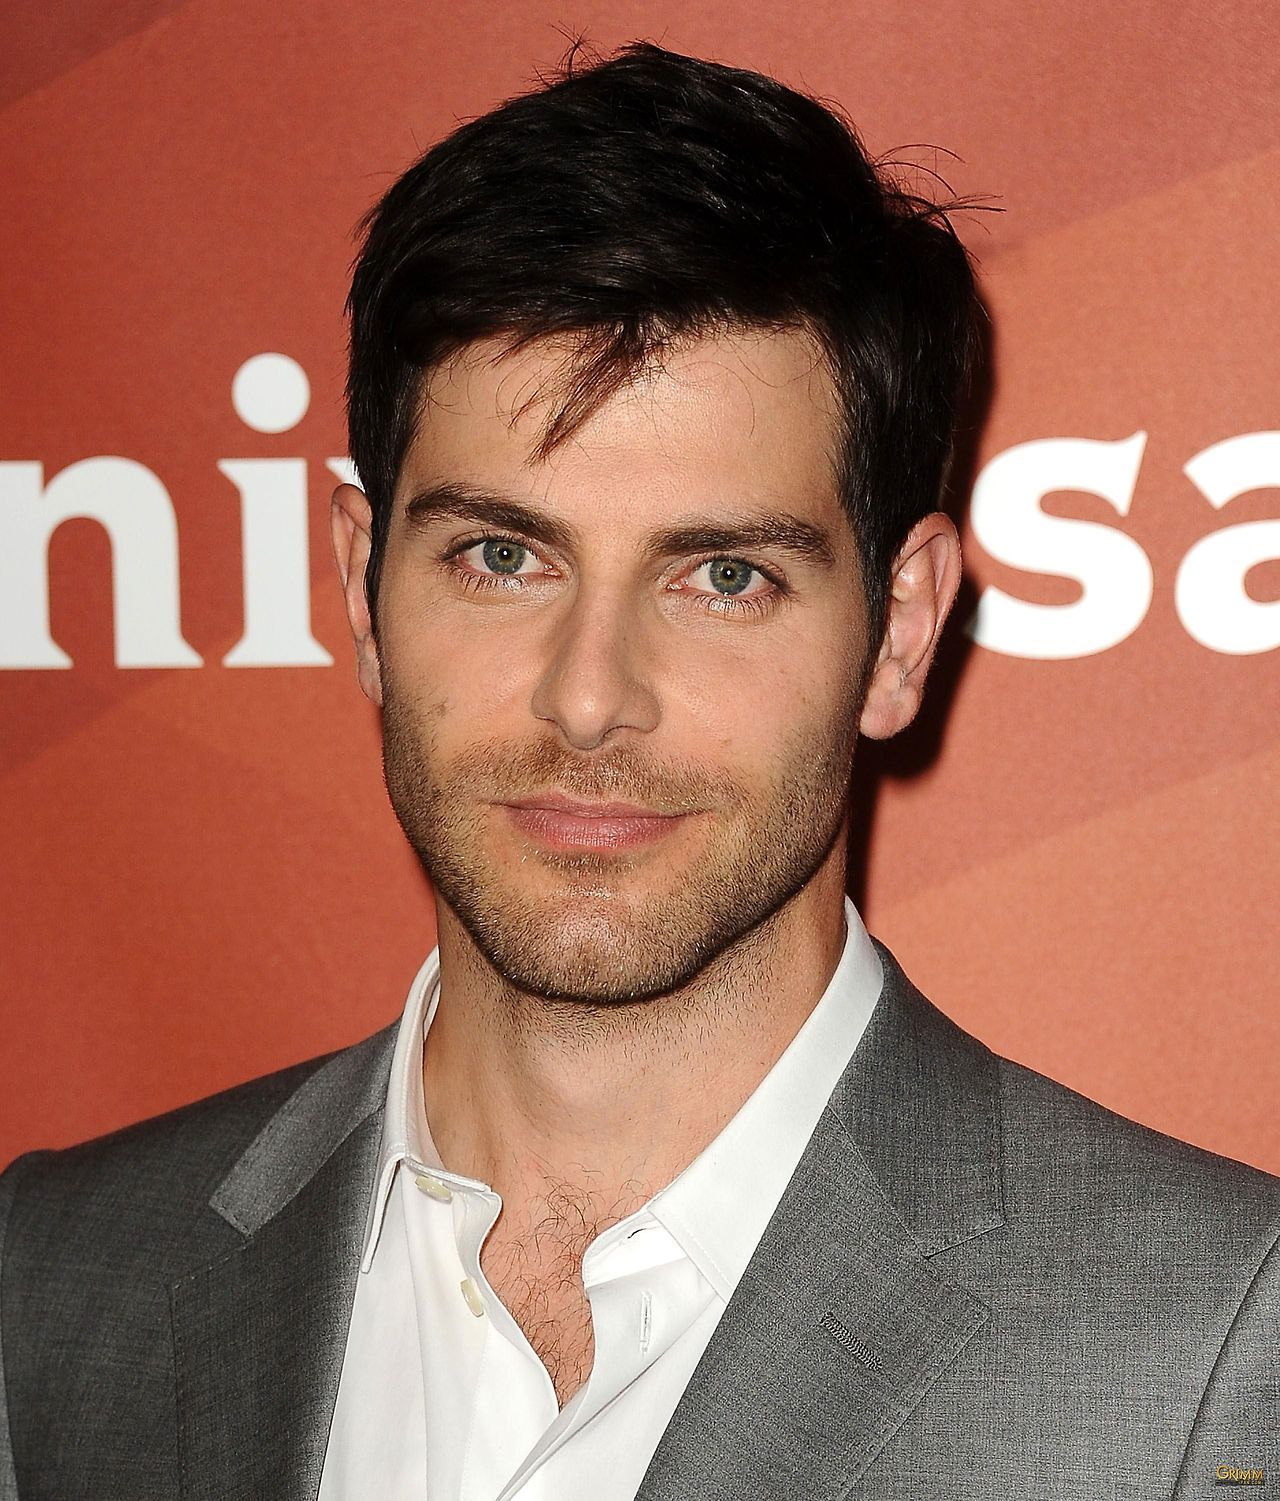 david giuntoli heightdavid giuntoli gif, david giuntoli sasha roiz, david giuntoli wife, david giuntoli height, david giuntoli twitter, david giuntoli 2017, david giuntoli -, david giuntoli википедия, david giuntoli wiki, david giuntoli and bitsie tulloch married, david giuntoli home, david giuntoli and claire coffee, david giuntoli personal life, david giuntoli net worth, david giuntoli gallery, david giuntoli instagram, david giuntoli insta, david giuntoli buddymoon, david giuntoli speaks italian, david giuntoli fansite